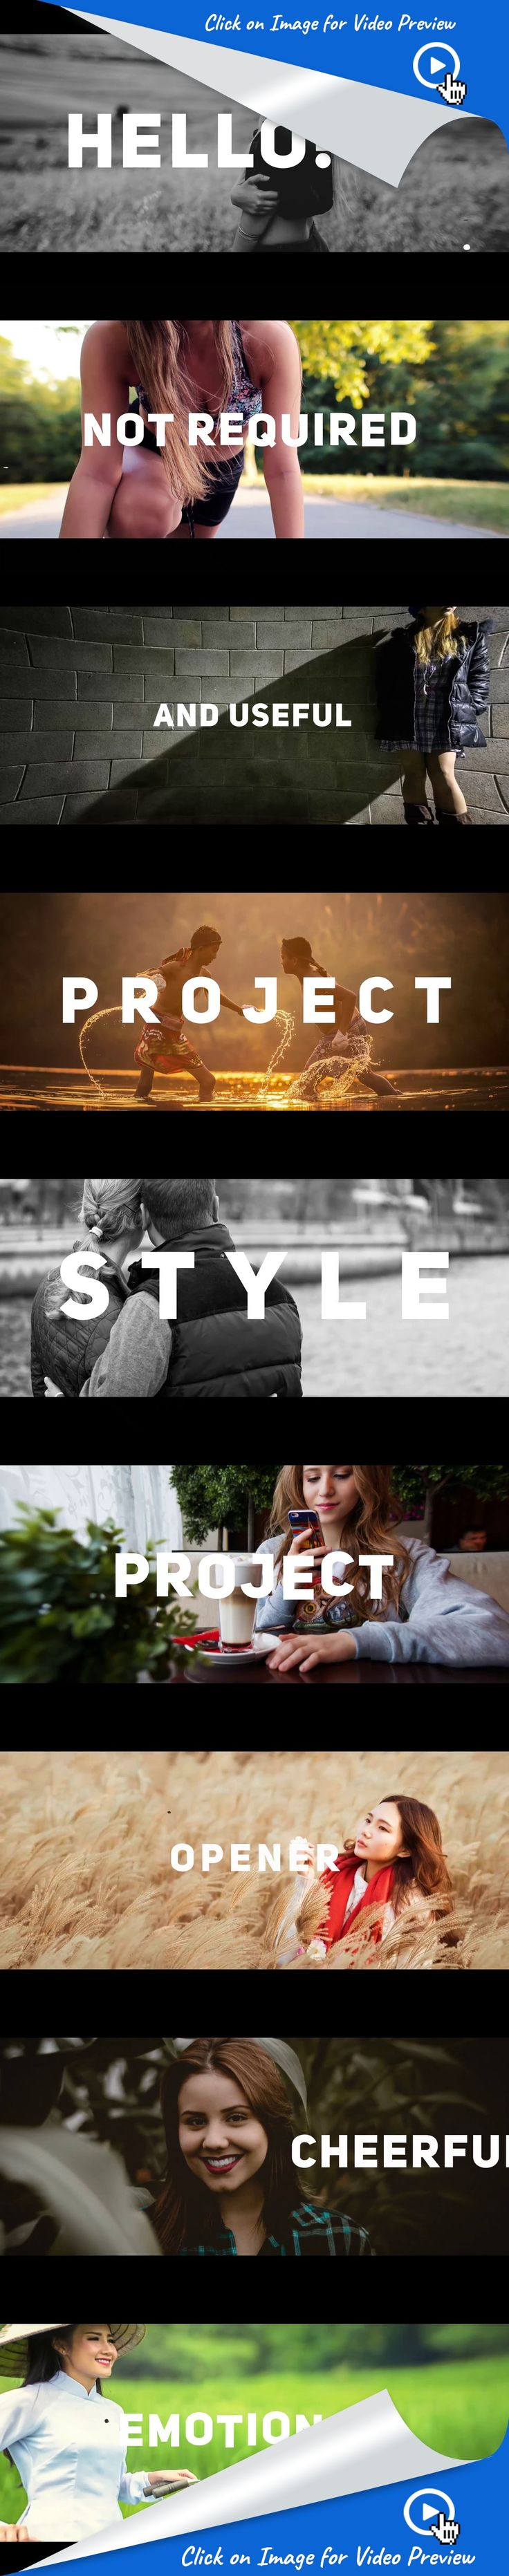 3d, action, beat, city, dynamic, film, happy, hip-hop, kinetic, modern, opener, promo, slideshow, travel, urban, after effects templates  Fast Render  Works with photo or video footage No Plugins Required Compatible with After Effects CS6, CC, CC 2014, CC 2015 CC 2017 and above Modular Structure Full HD (1920/1080)  Video tutorial included Works in every language version of After Effects 100% After Effects Very easy to use Text placeholders for photo or video footage Font is free, link…